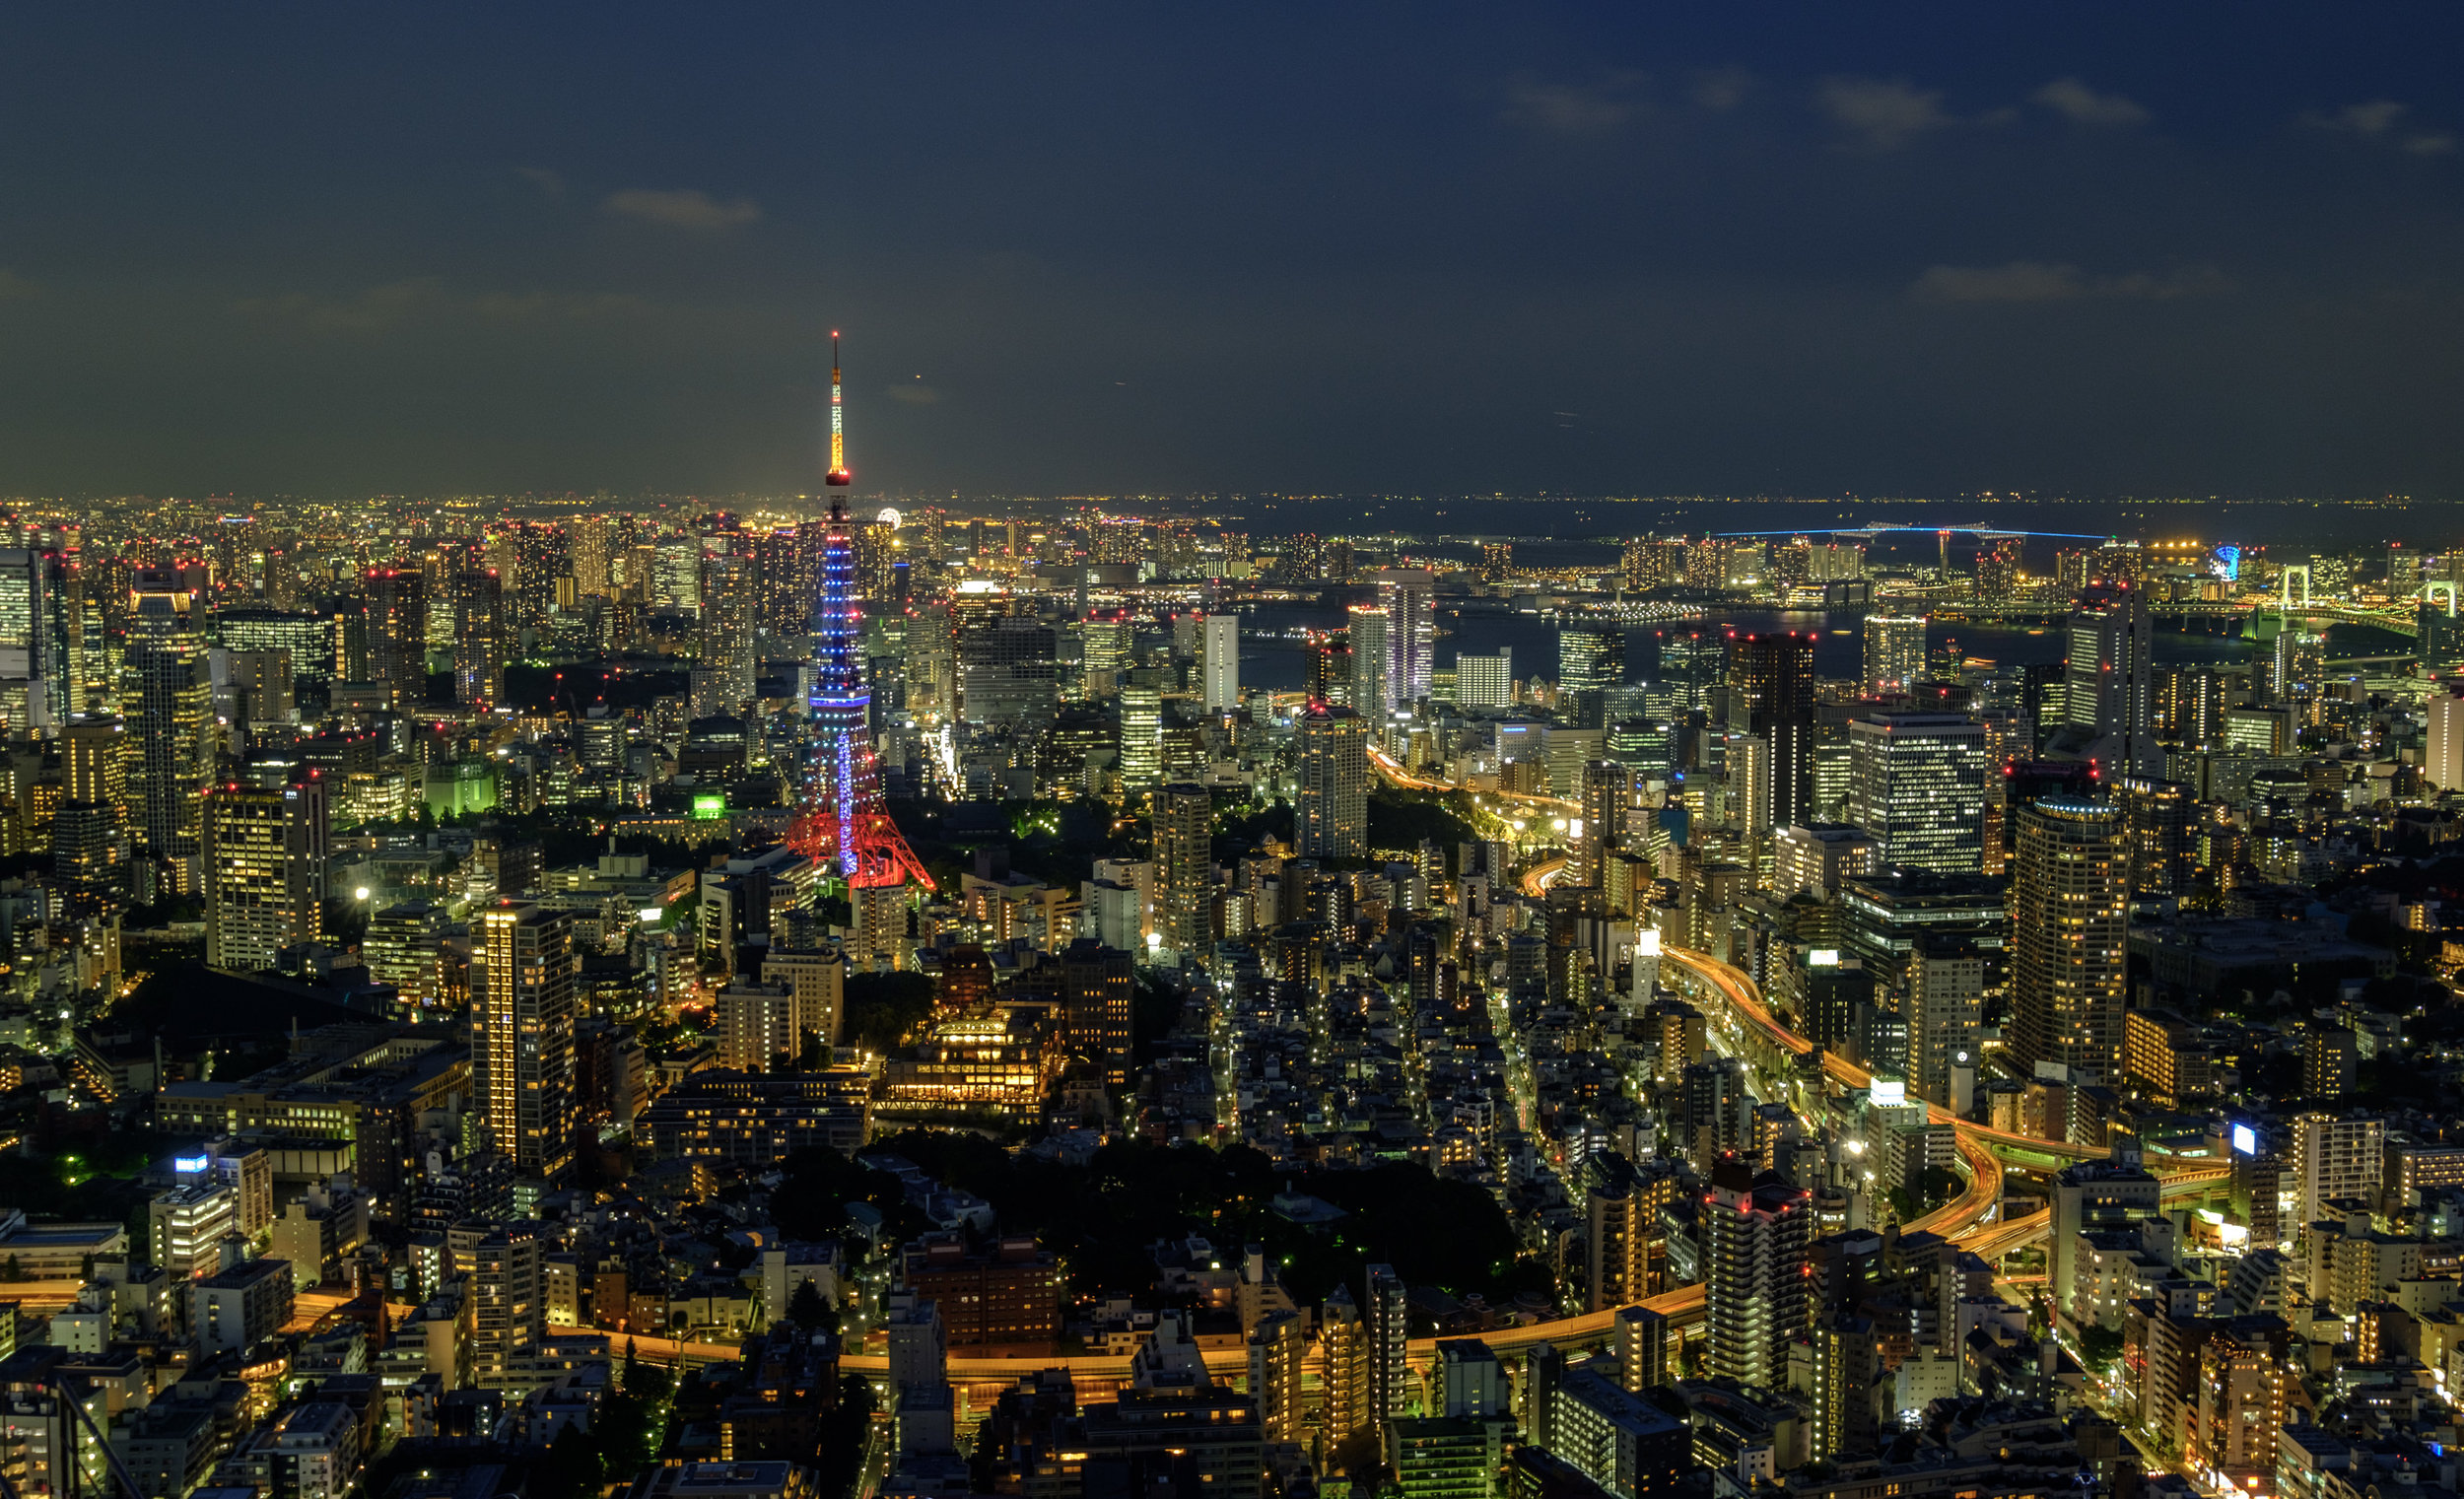 Tokyo Skyline - 24mm, F6.4, 3.5s at ISO200